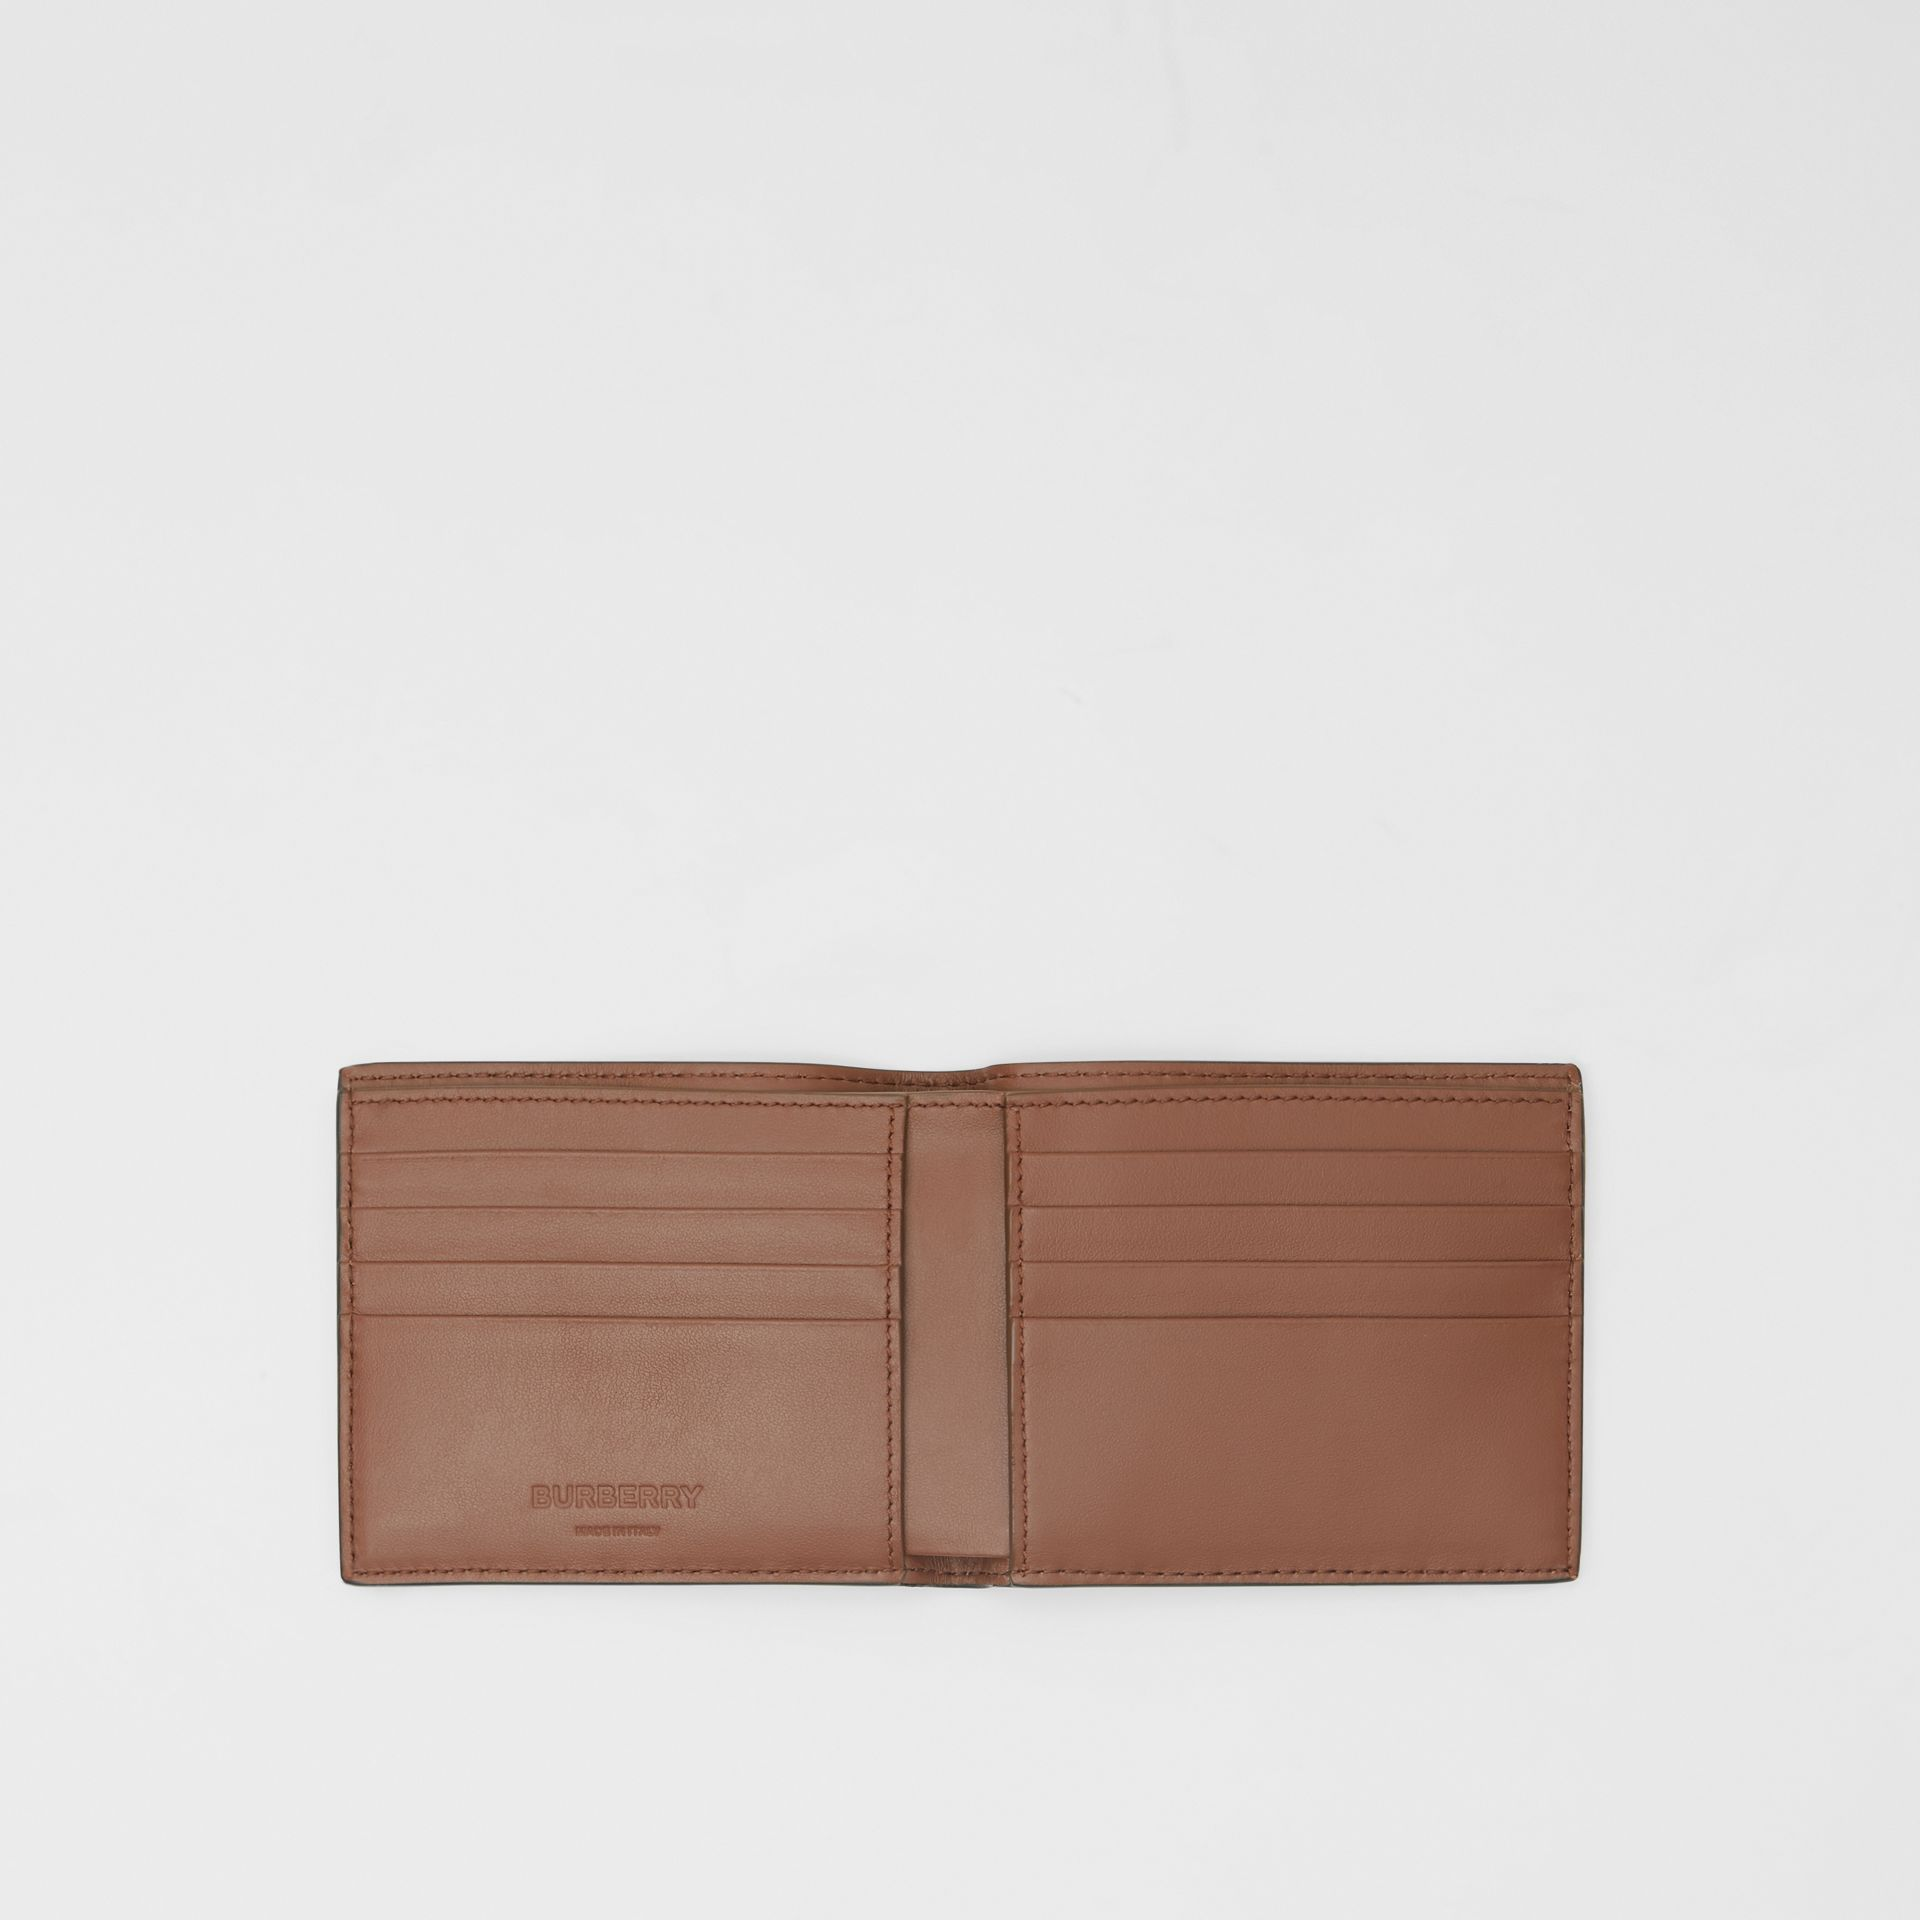 Monogram Leather International Bifold Wallet in Dark Tan - Men | Burberry - gallery image 2